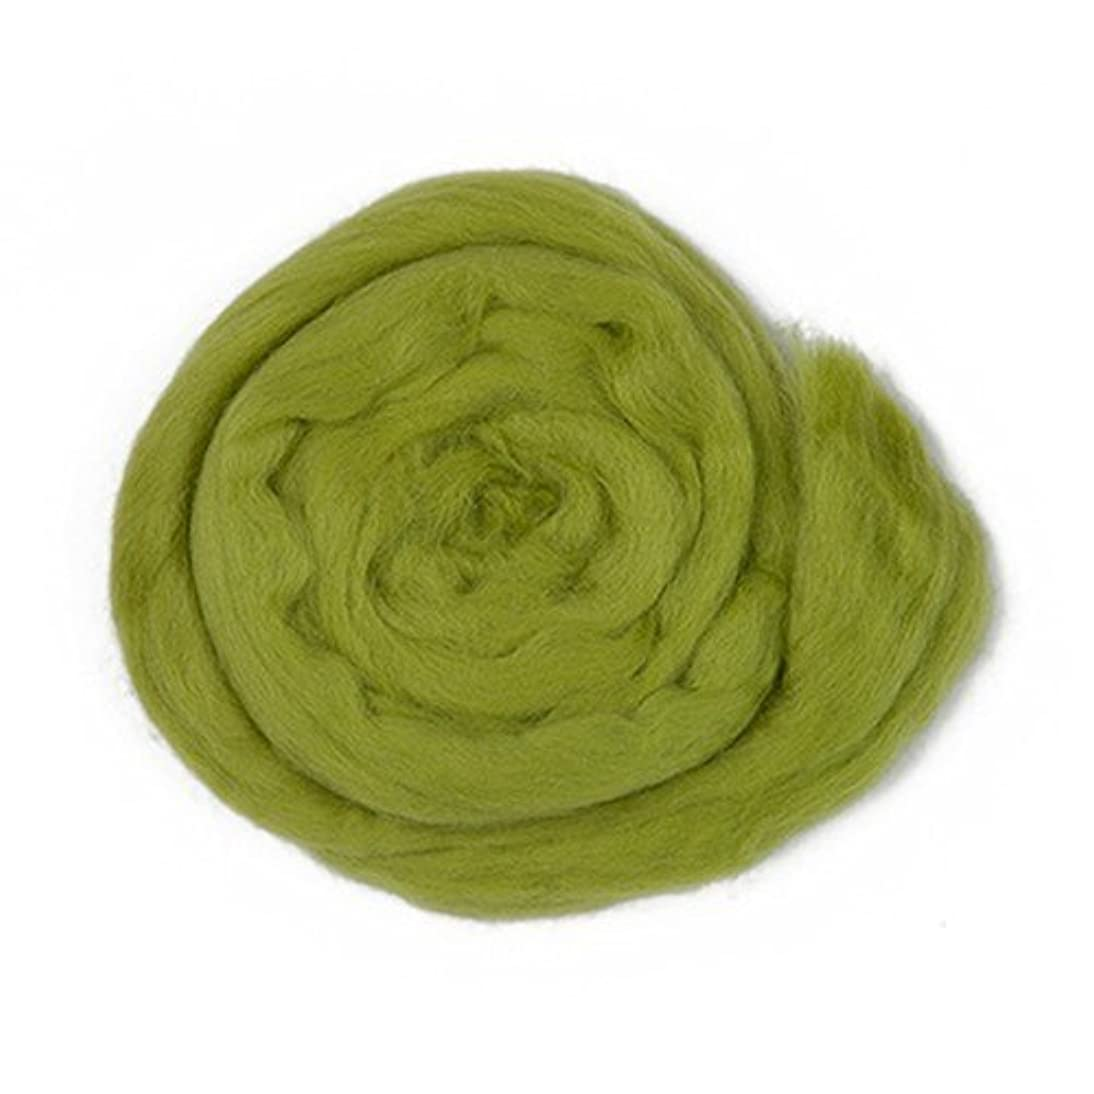 Kartopu Felt Wool 1.76 Oz (50g) Needle Felting Wool Roving, 100% Wool (Green - K442)